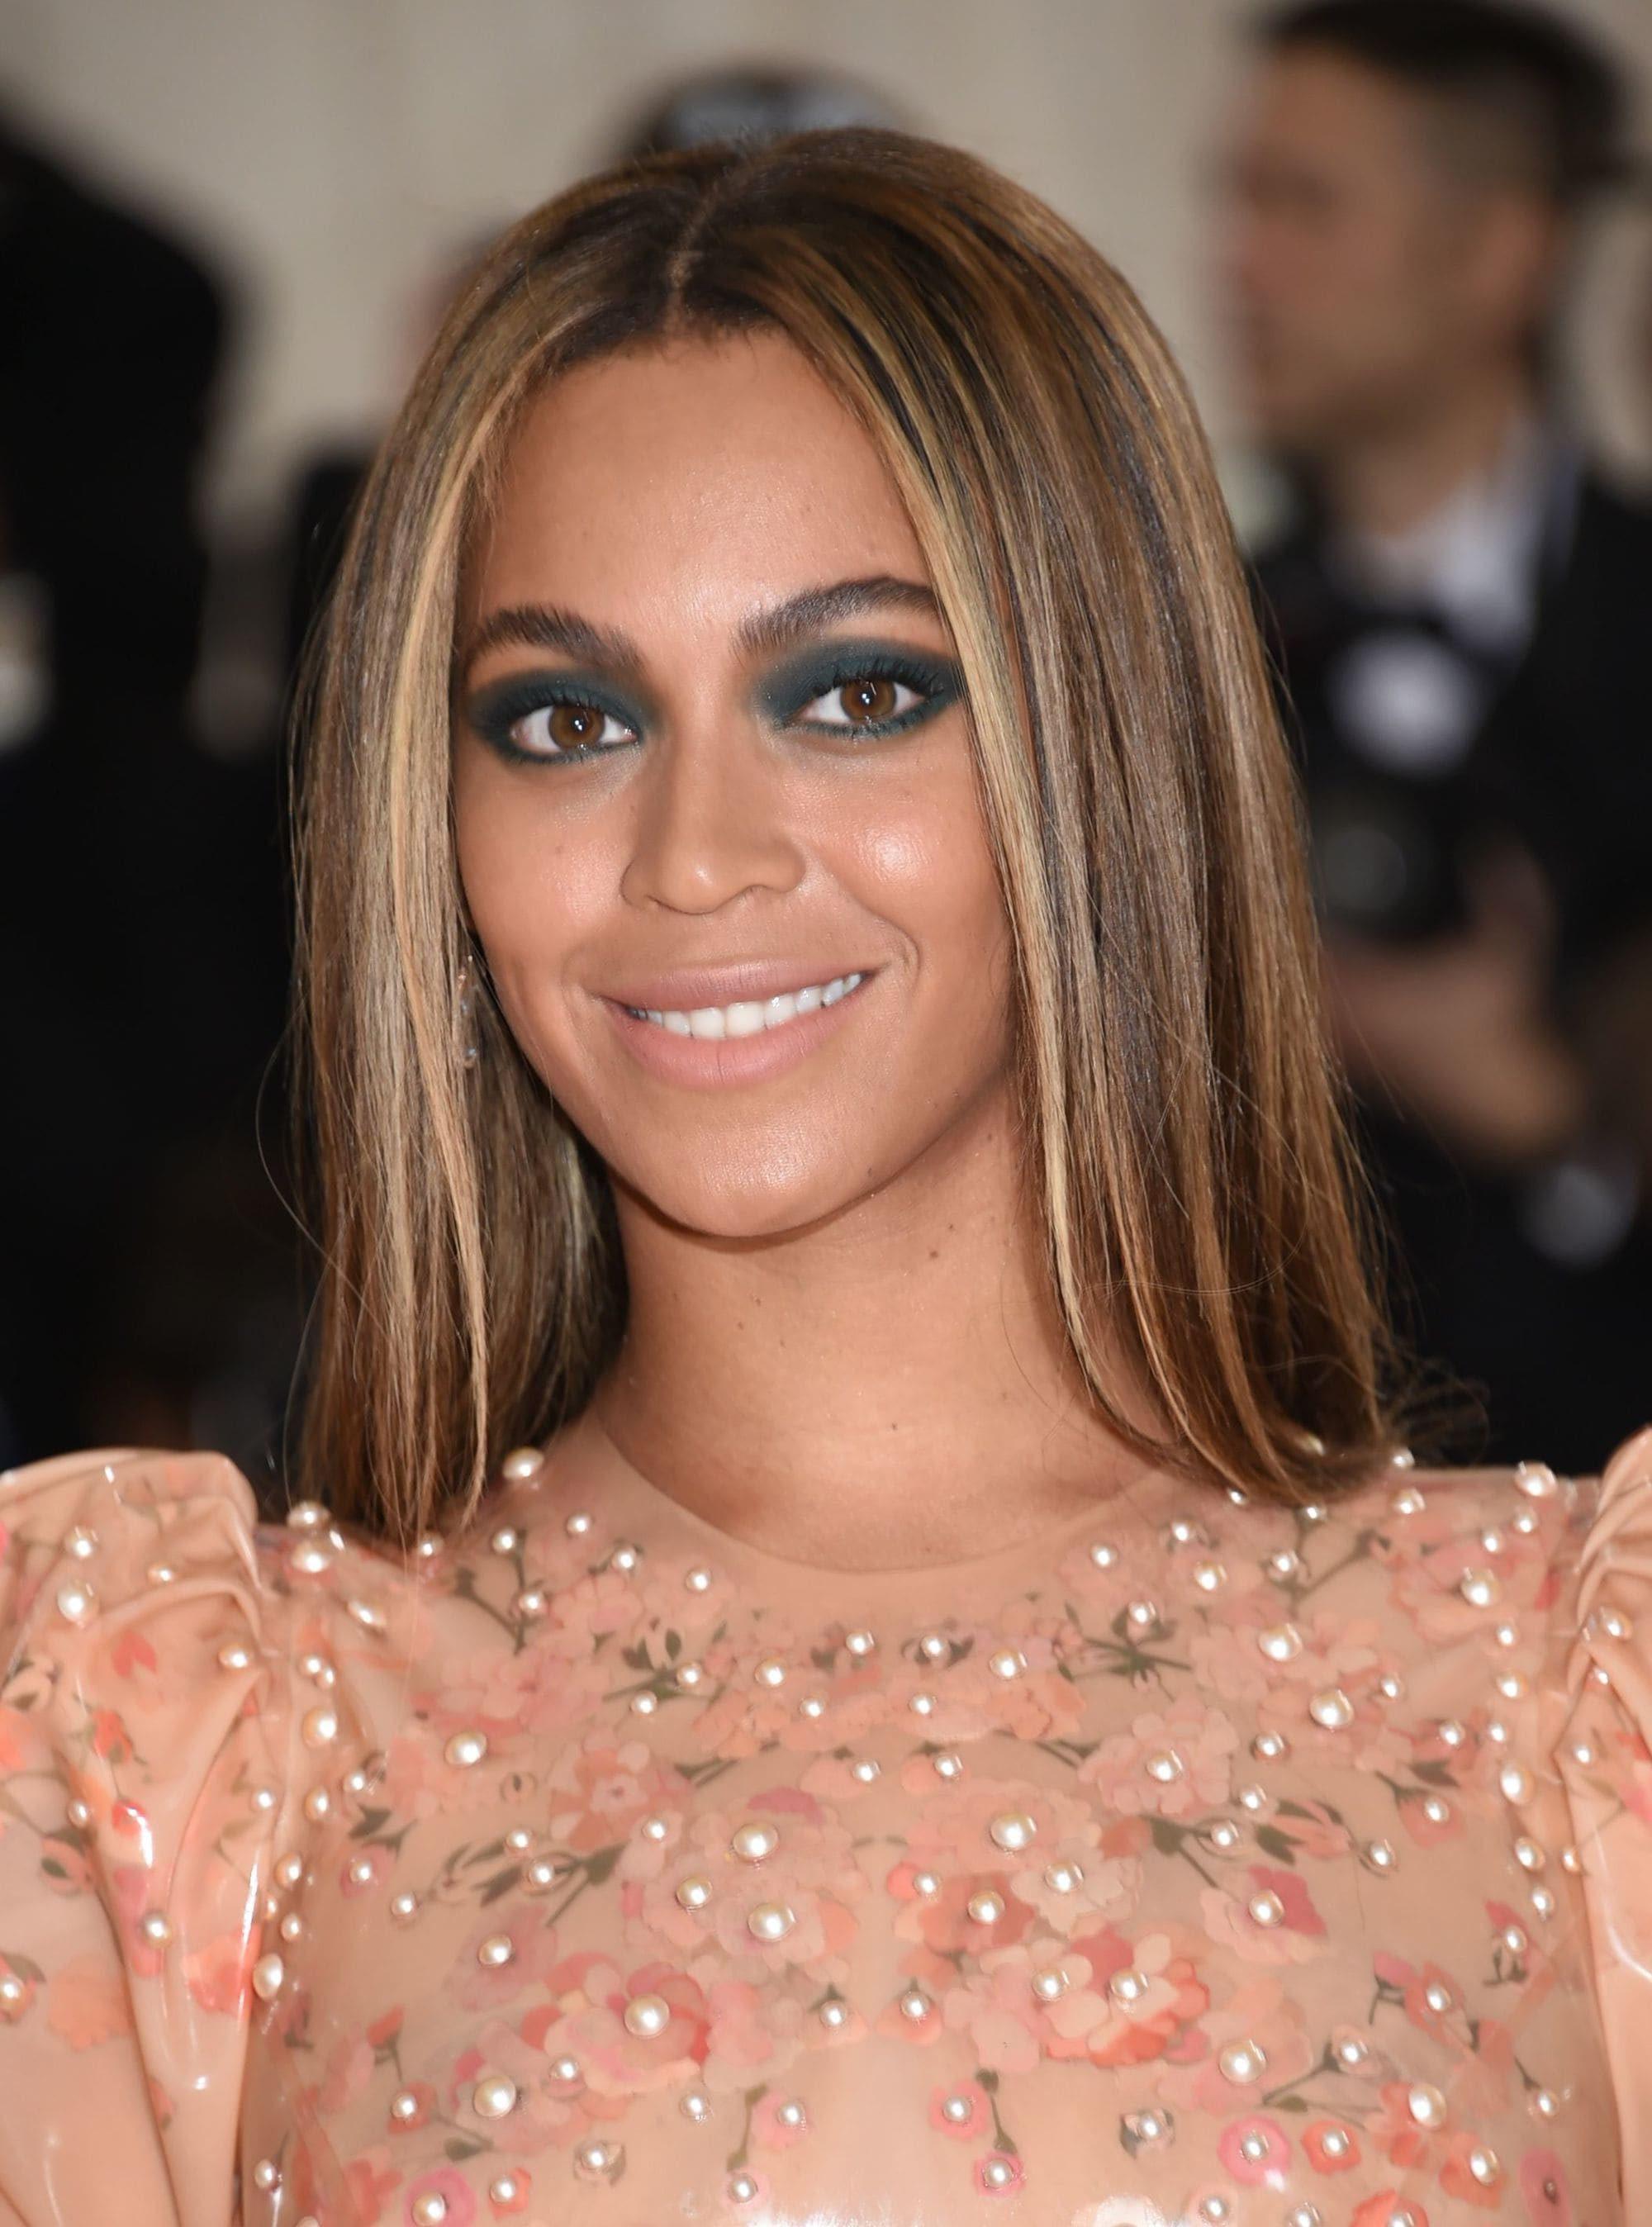 Beyonce with long straight caramel brown hair with blonde highlights, wearing rose gold dress on the red carpet